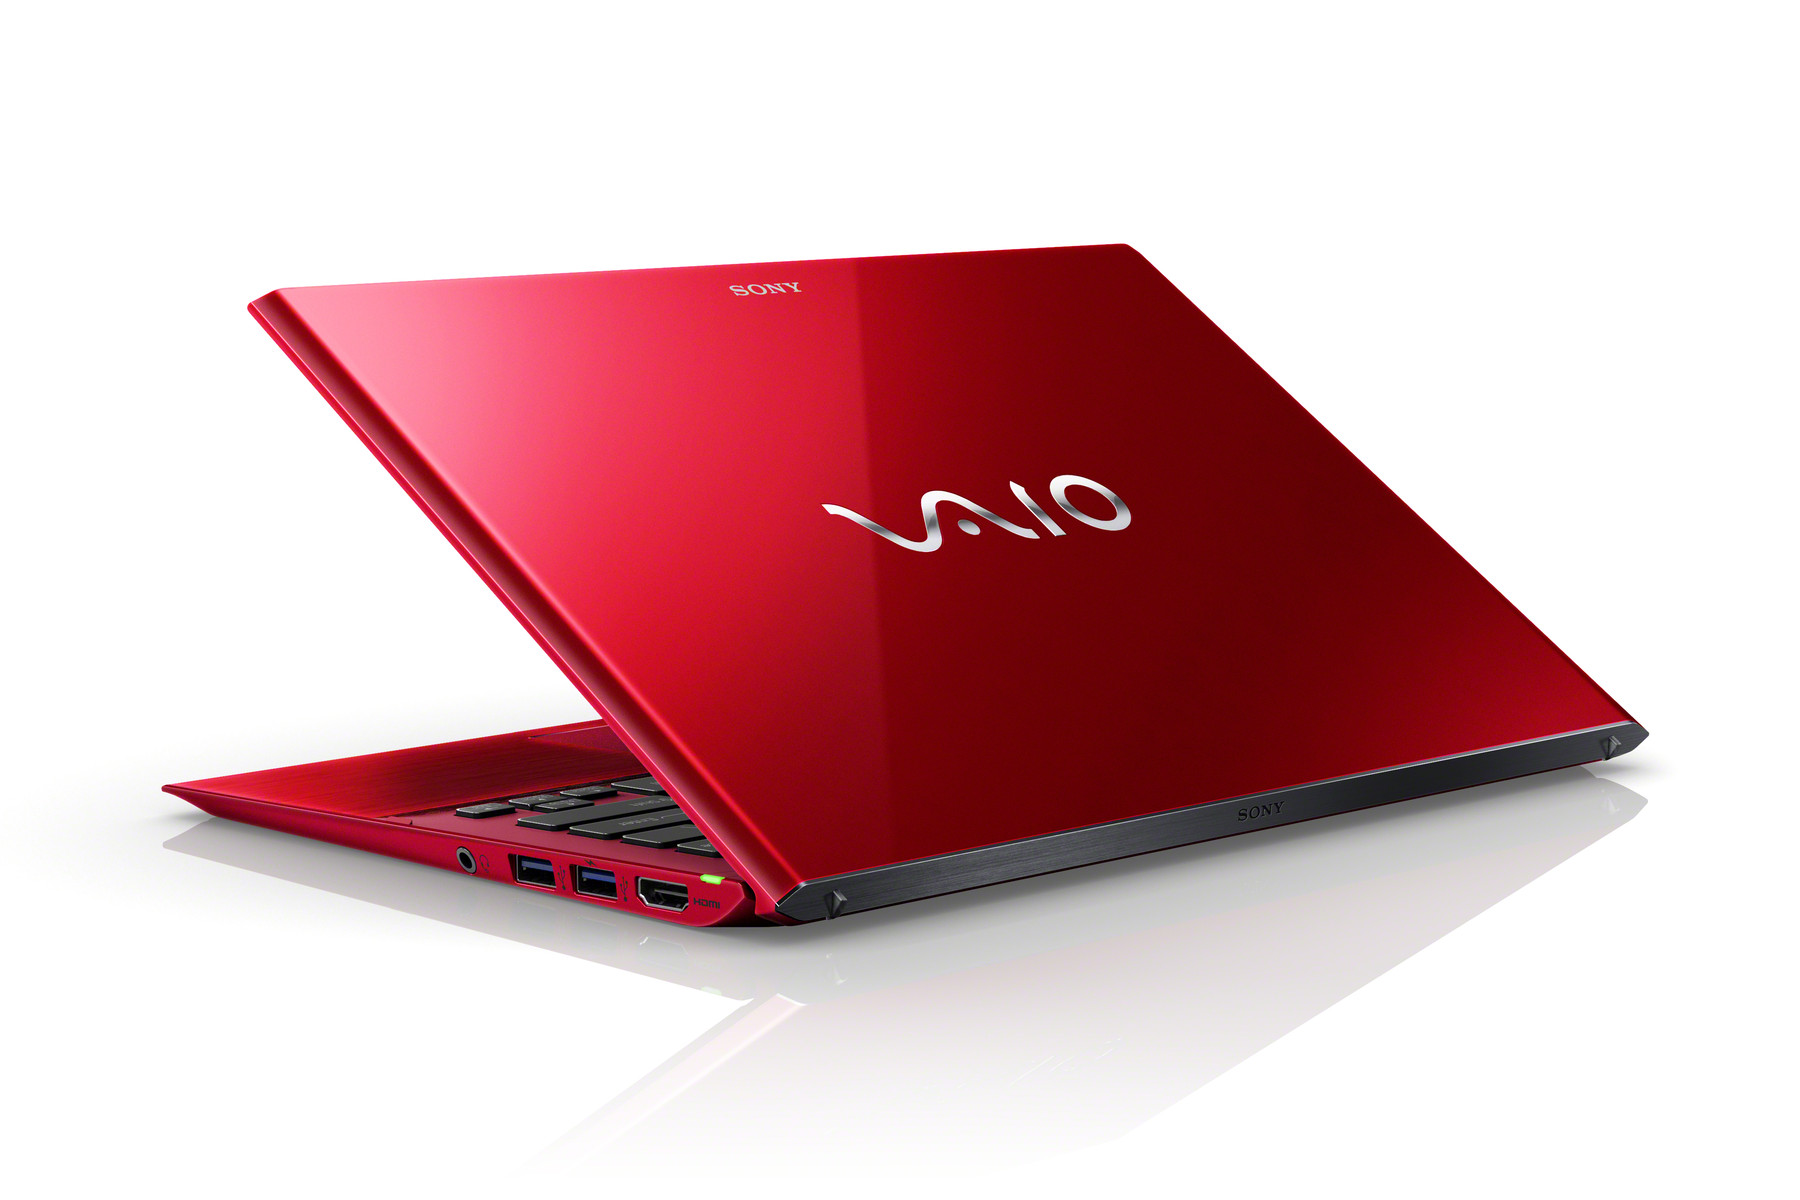 csm_Sony_VAIO_Red_Edition_5_6633288a36